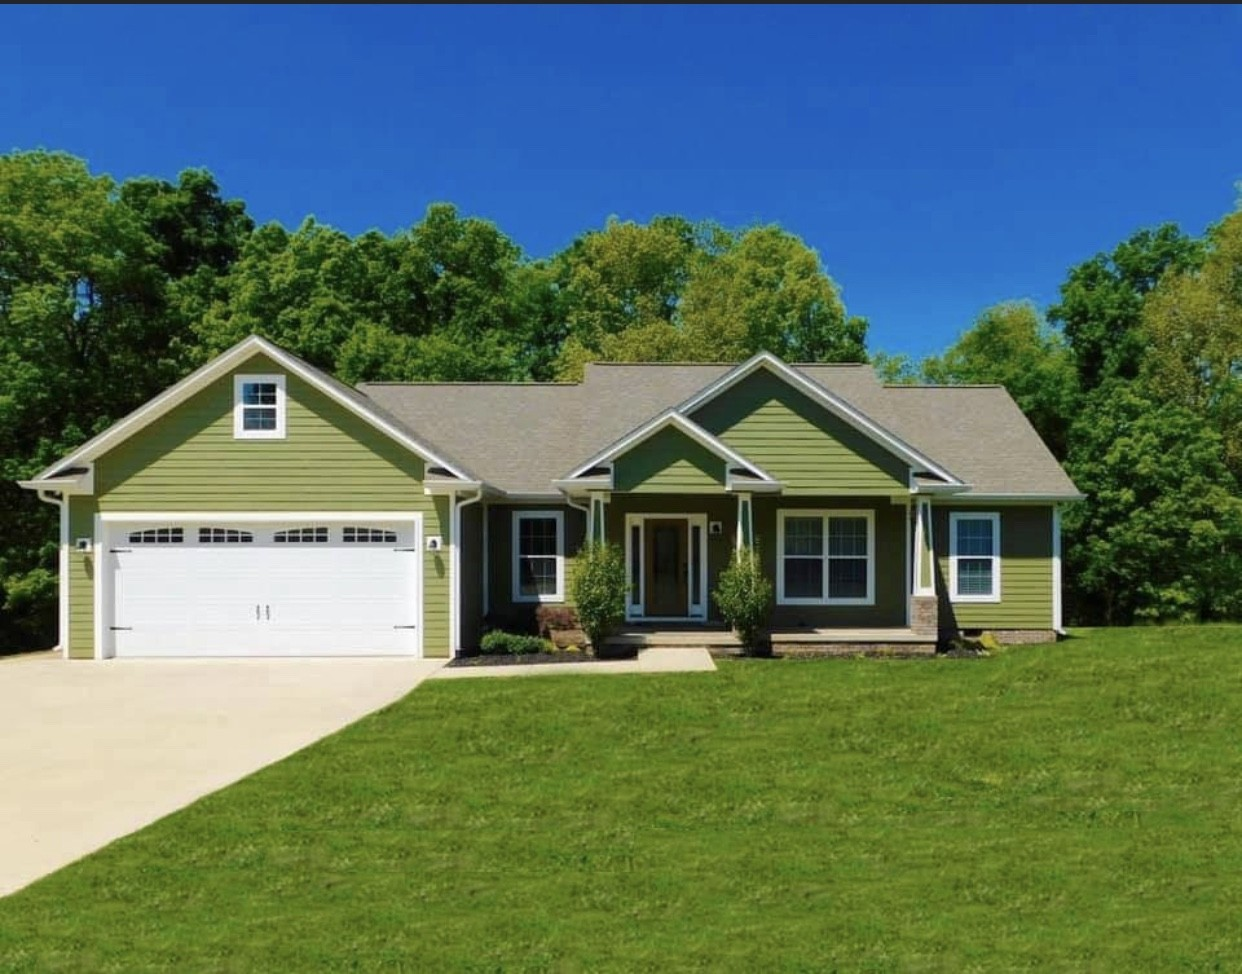 332 Mary Alice Dr Property Photo - Leoma, TN real estate listing